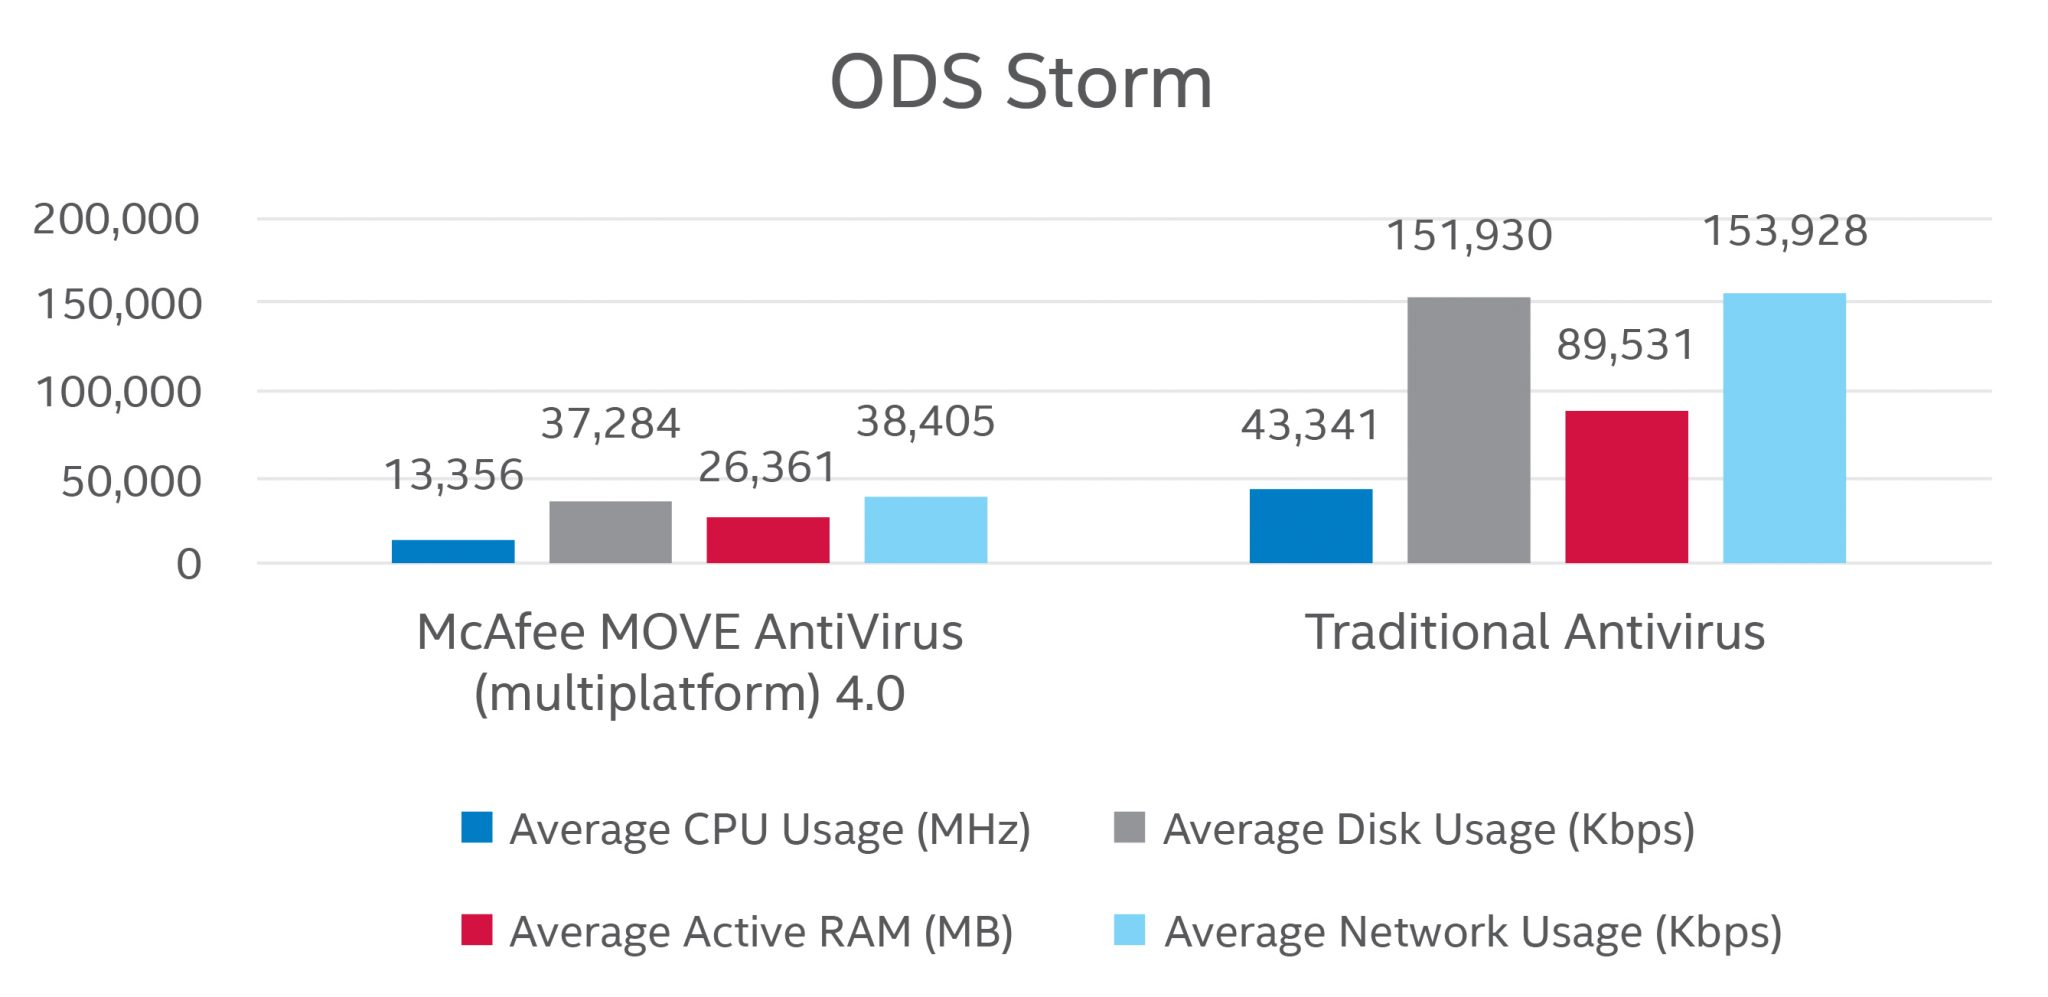 ODS Storm with and without McAfee MOVE